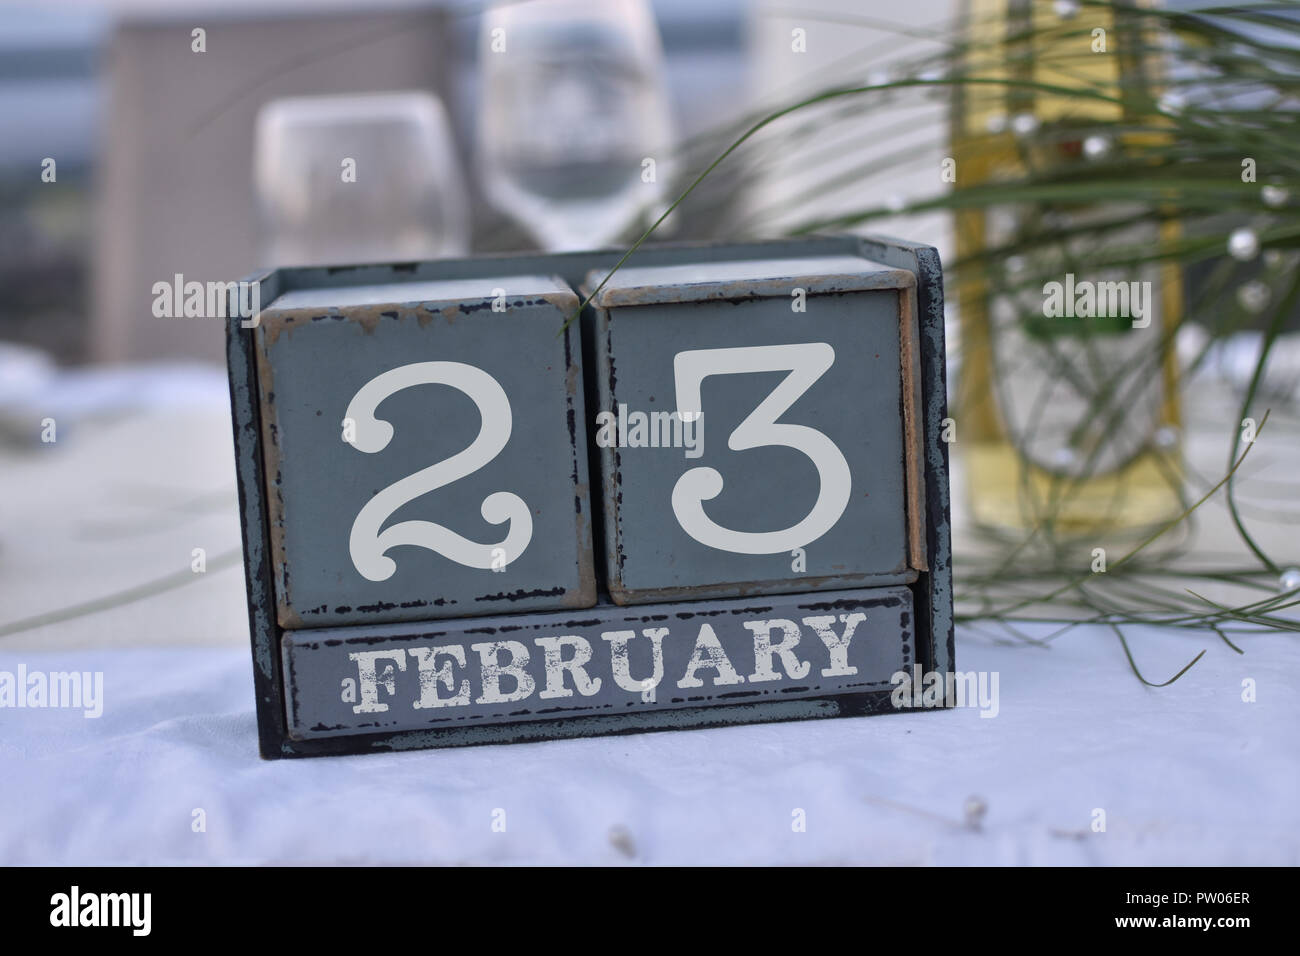 Wood blocks in box with date, day and month 23 February. Wooden blocks calendar Stock Photo